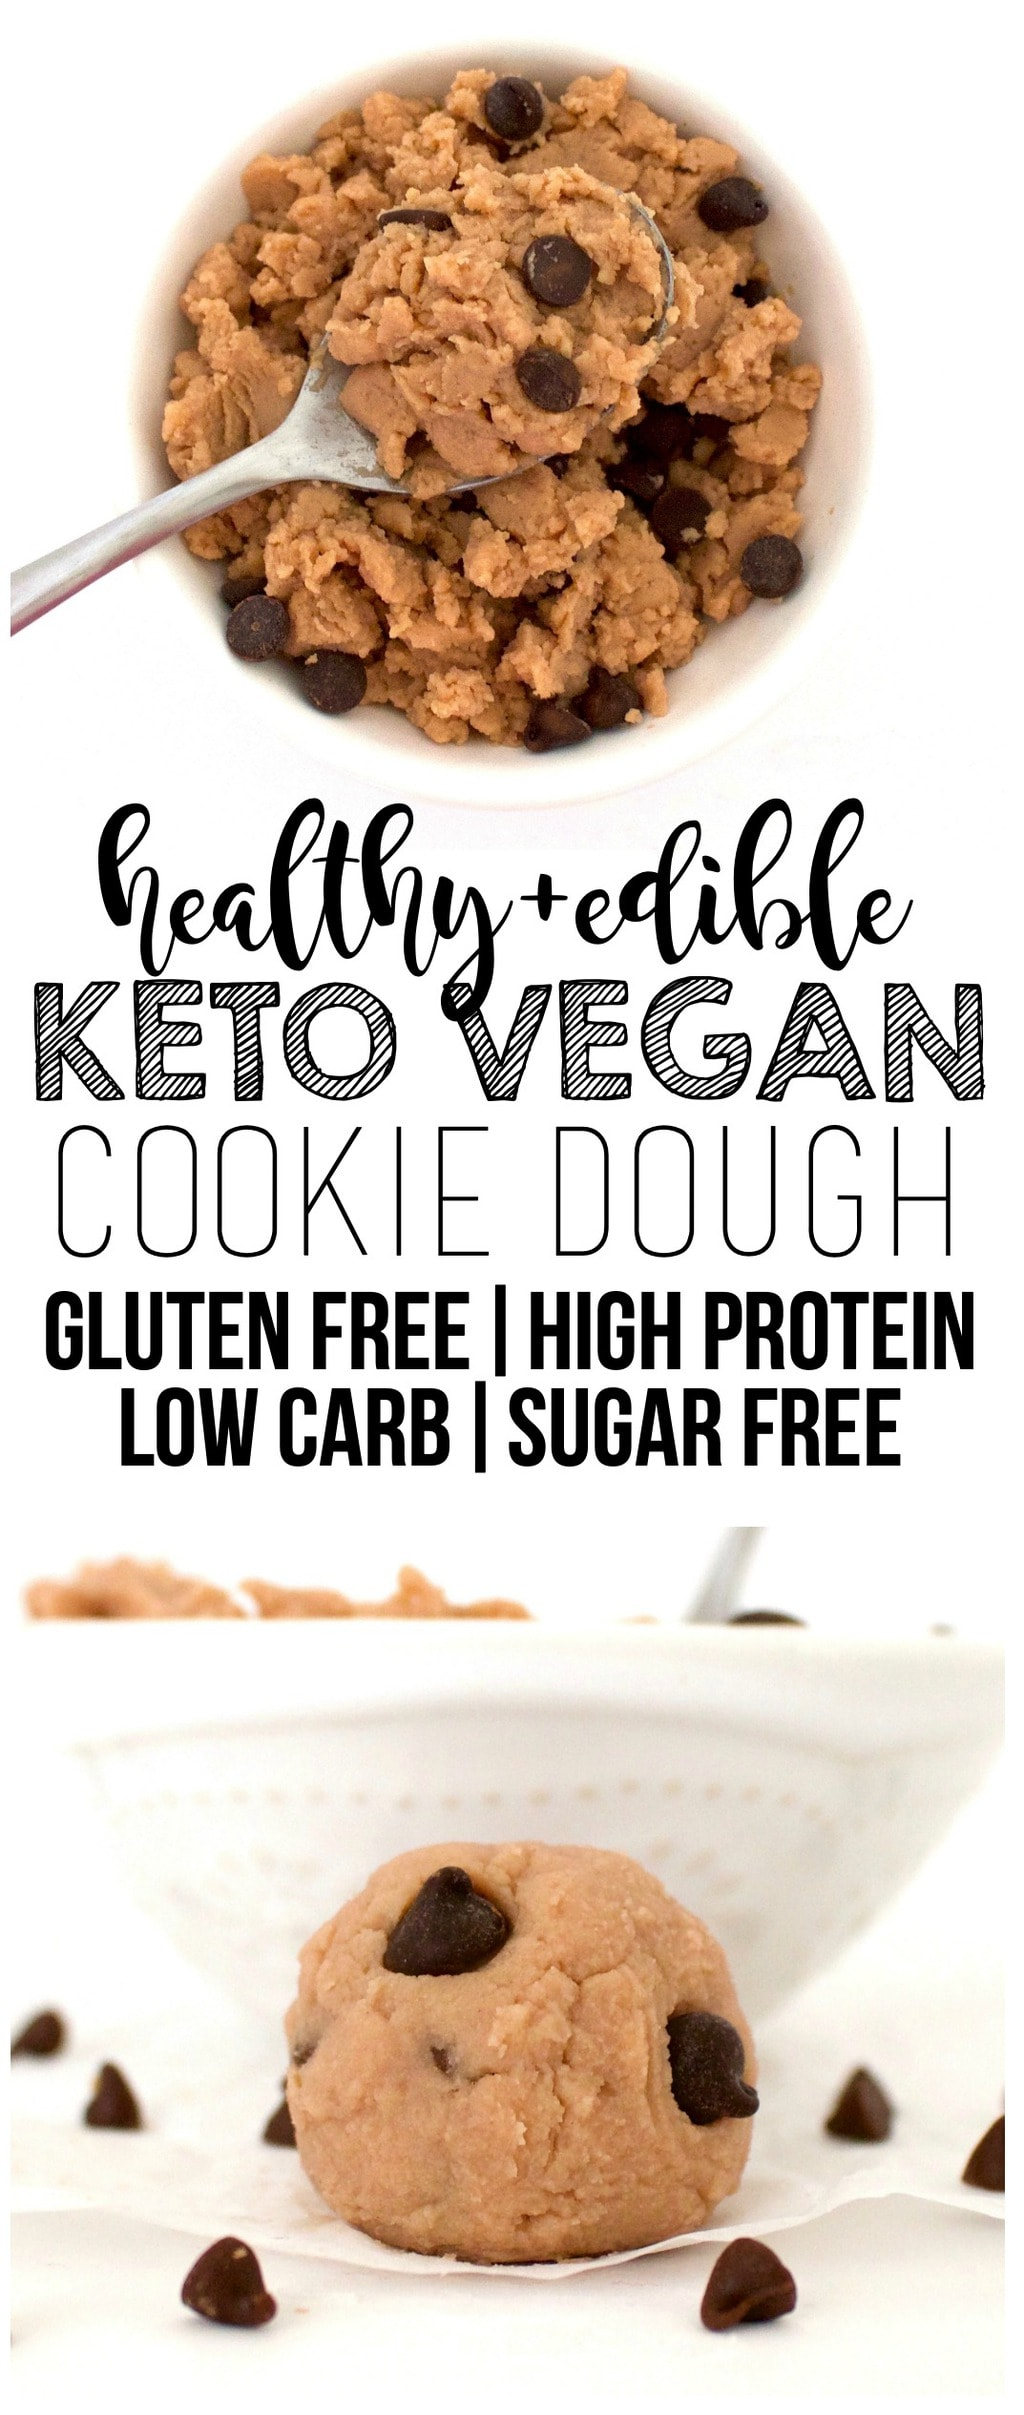 This Keto Vegan Cookie Dough is absolutely heavenly! It's only 138 calories for a whole bowl of it. Gluten-free, sugar-free, dairy-free, low-carb, and high-protein! The healthiest cookie dough EVER!